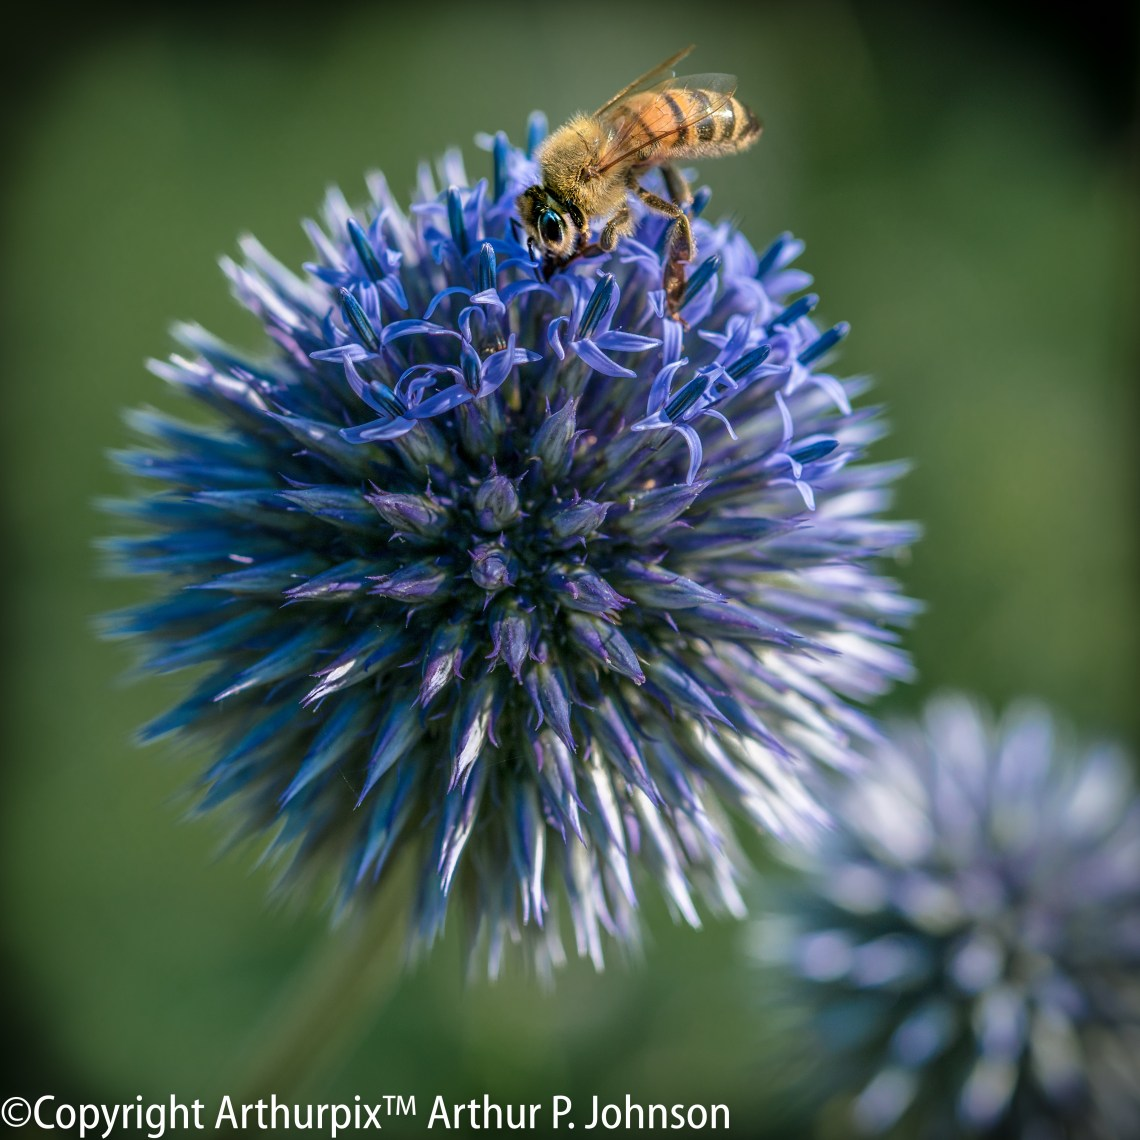 Honeybee on purple Globe Amarynth